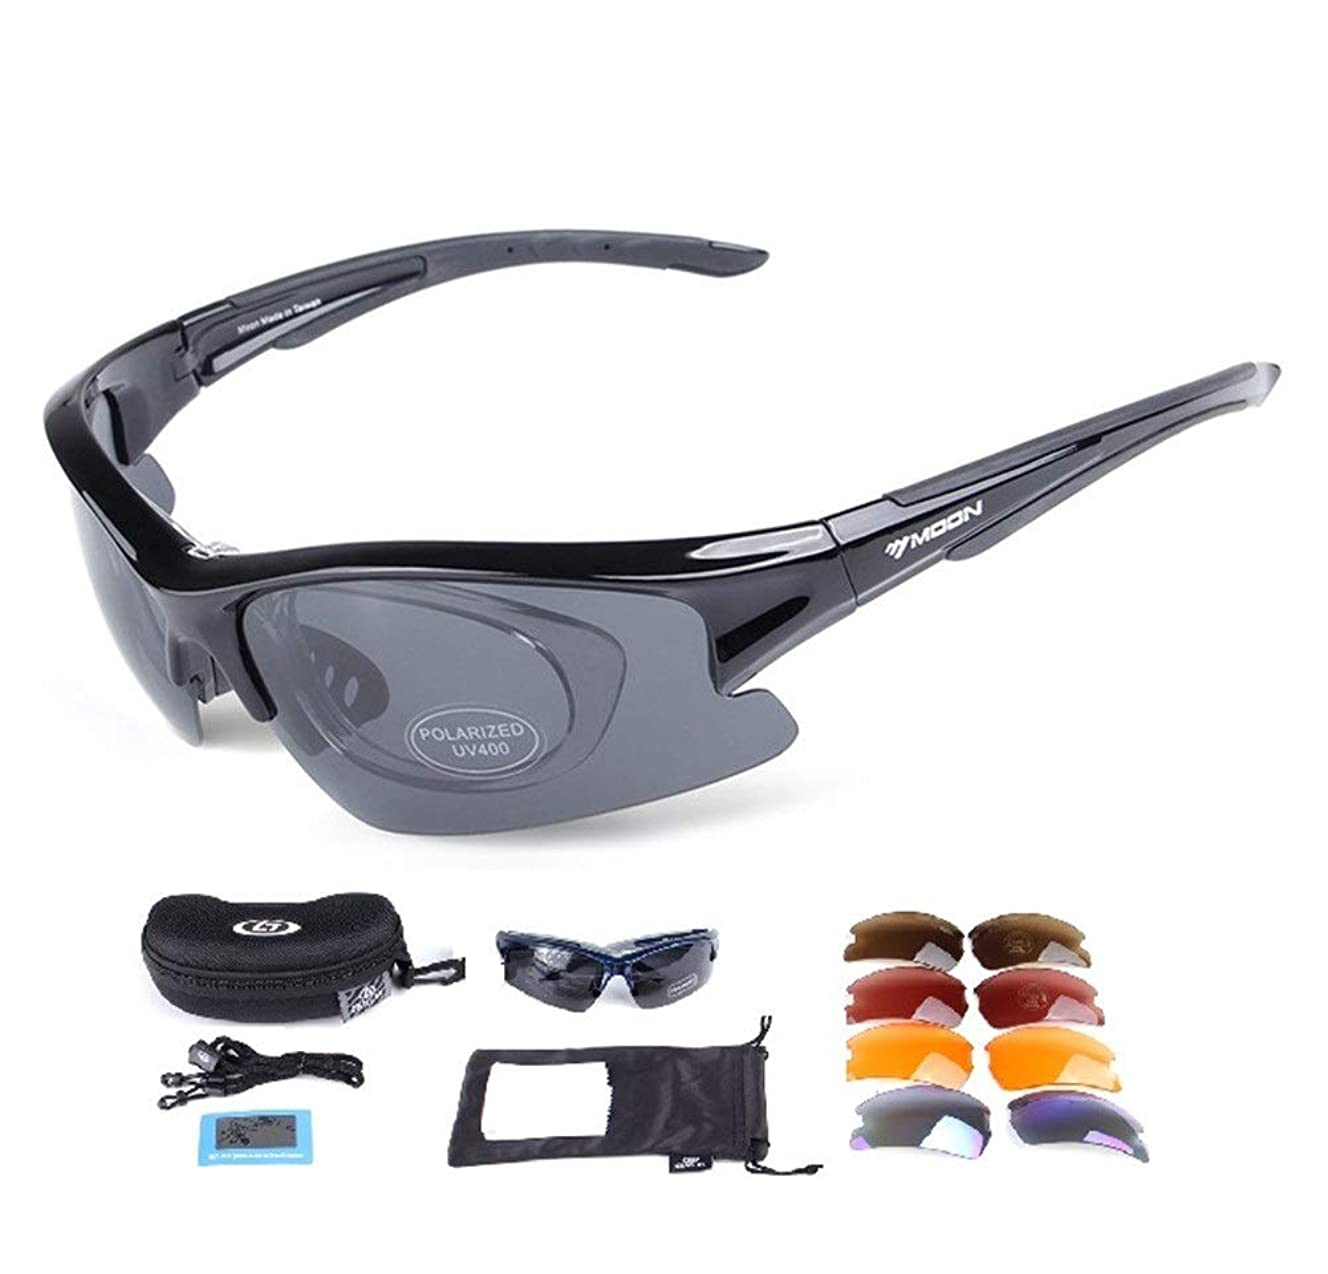 Rungear Polarized Sports Sunglasses with 5 Interchangeable Lenses, Tr90 Unbreakable Glasses for Men Women Cycling Driving Running MTB Racing Ski Goggles